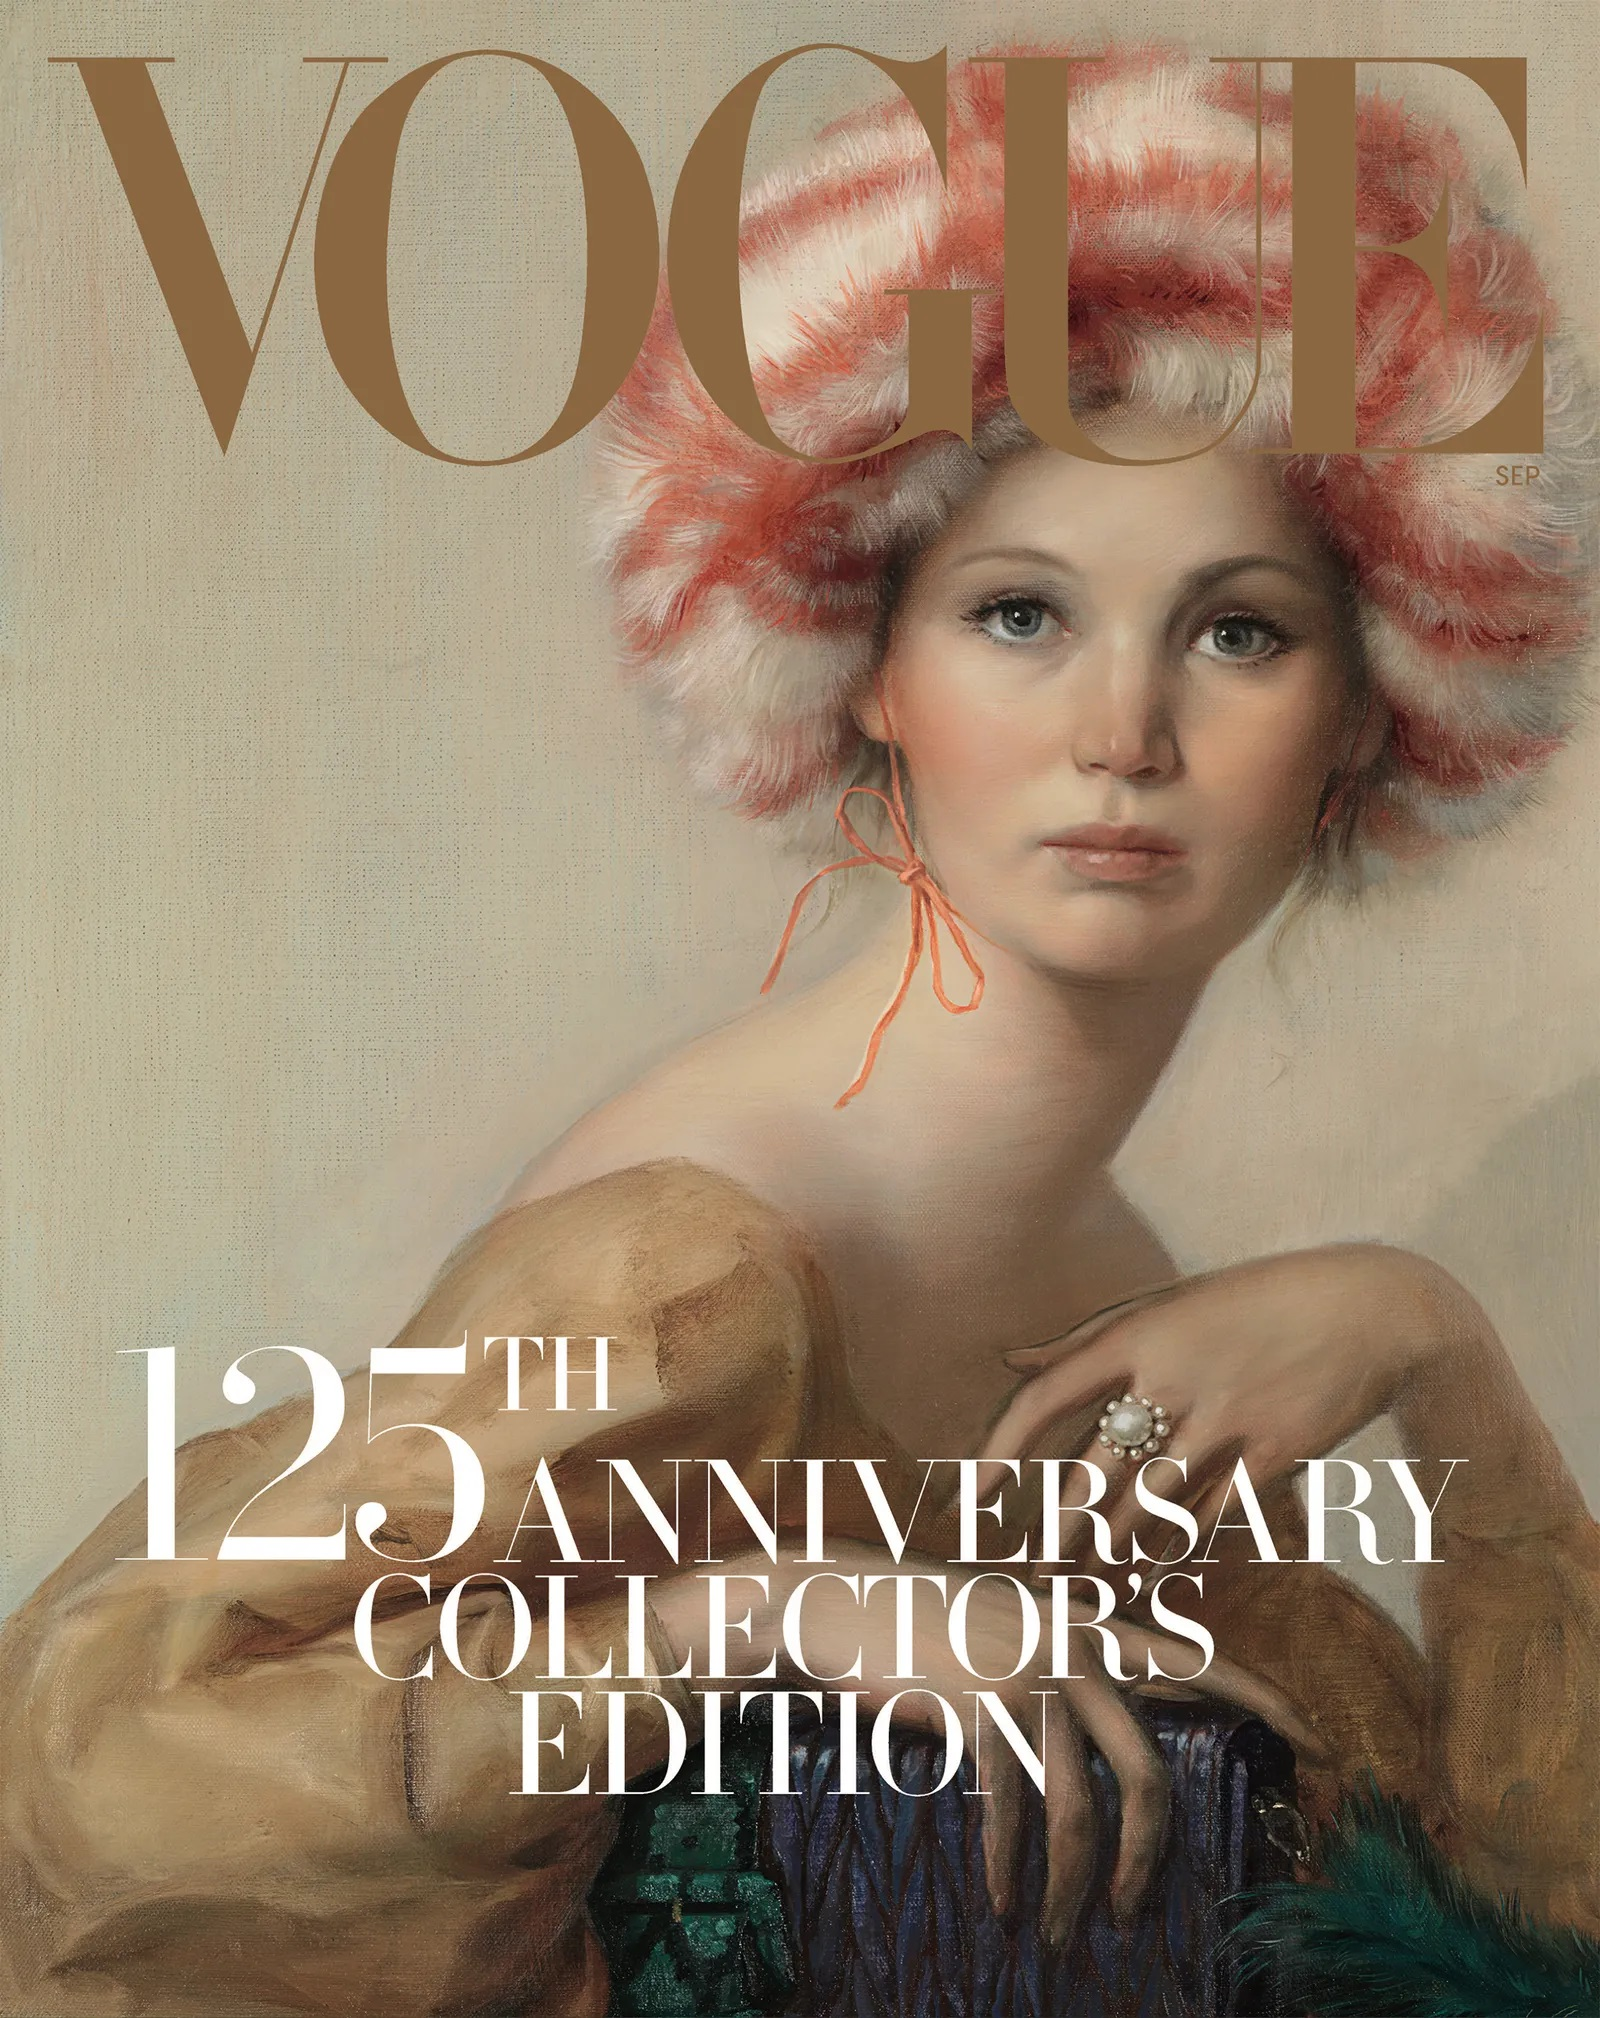 John Currin's 2017 cover for Vogue, Untitled, 2017. ©John Currin. Vogue, 2017